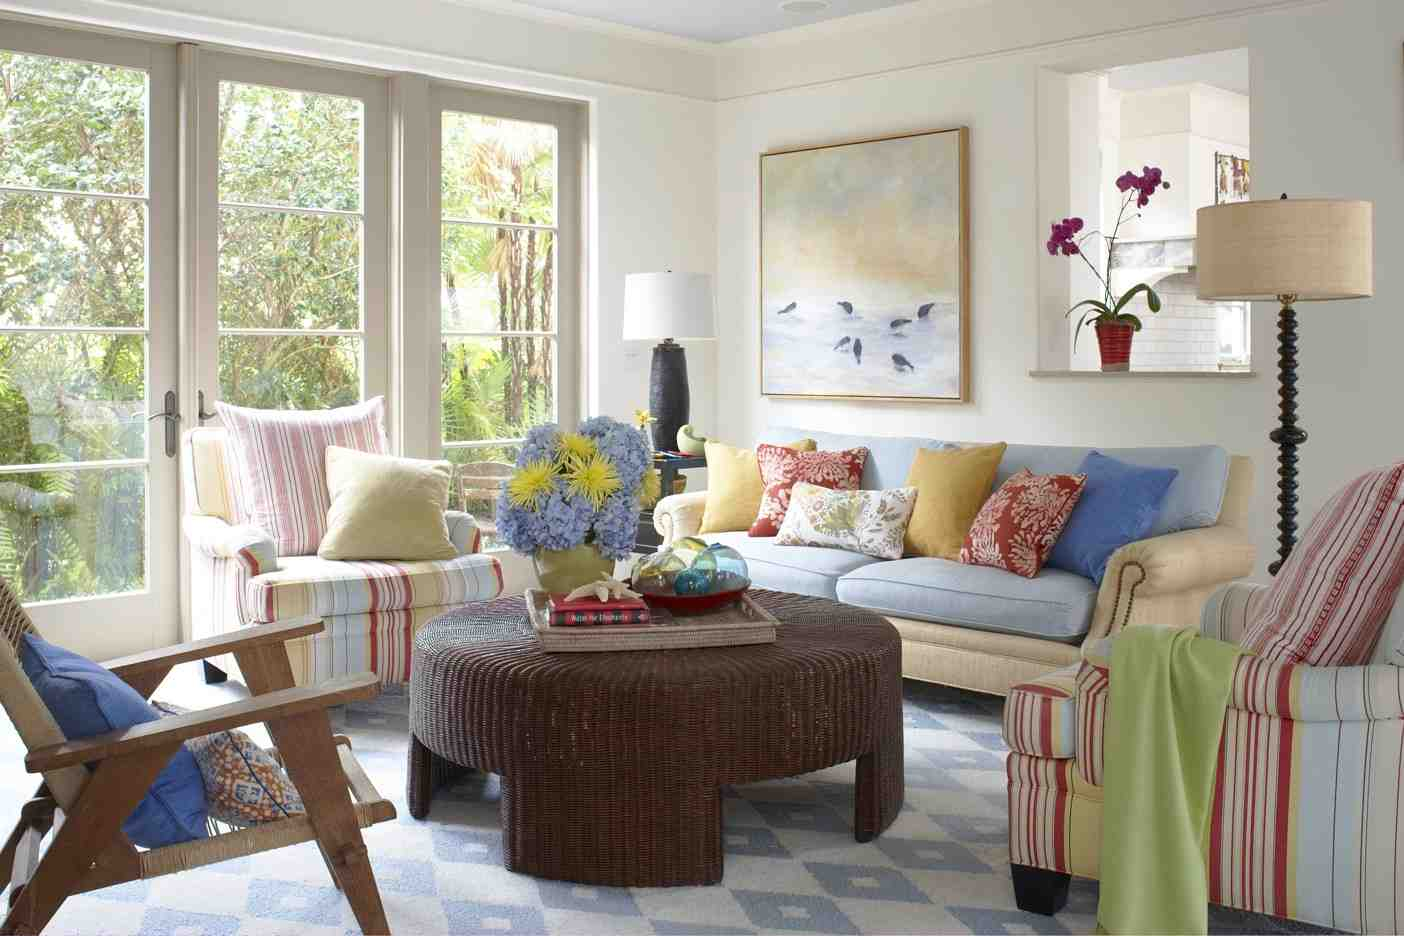 Better homes and gardens design a room homesfeed for Living room decorating ideas 2015